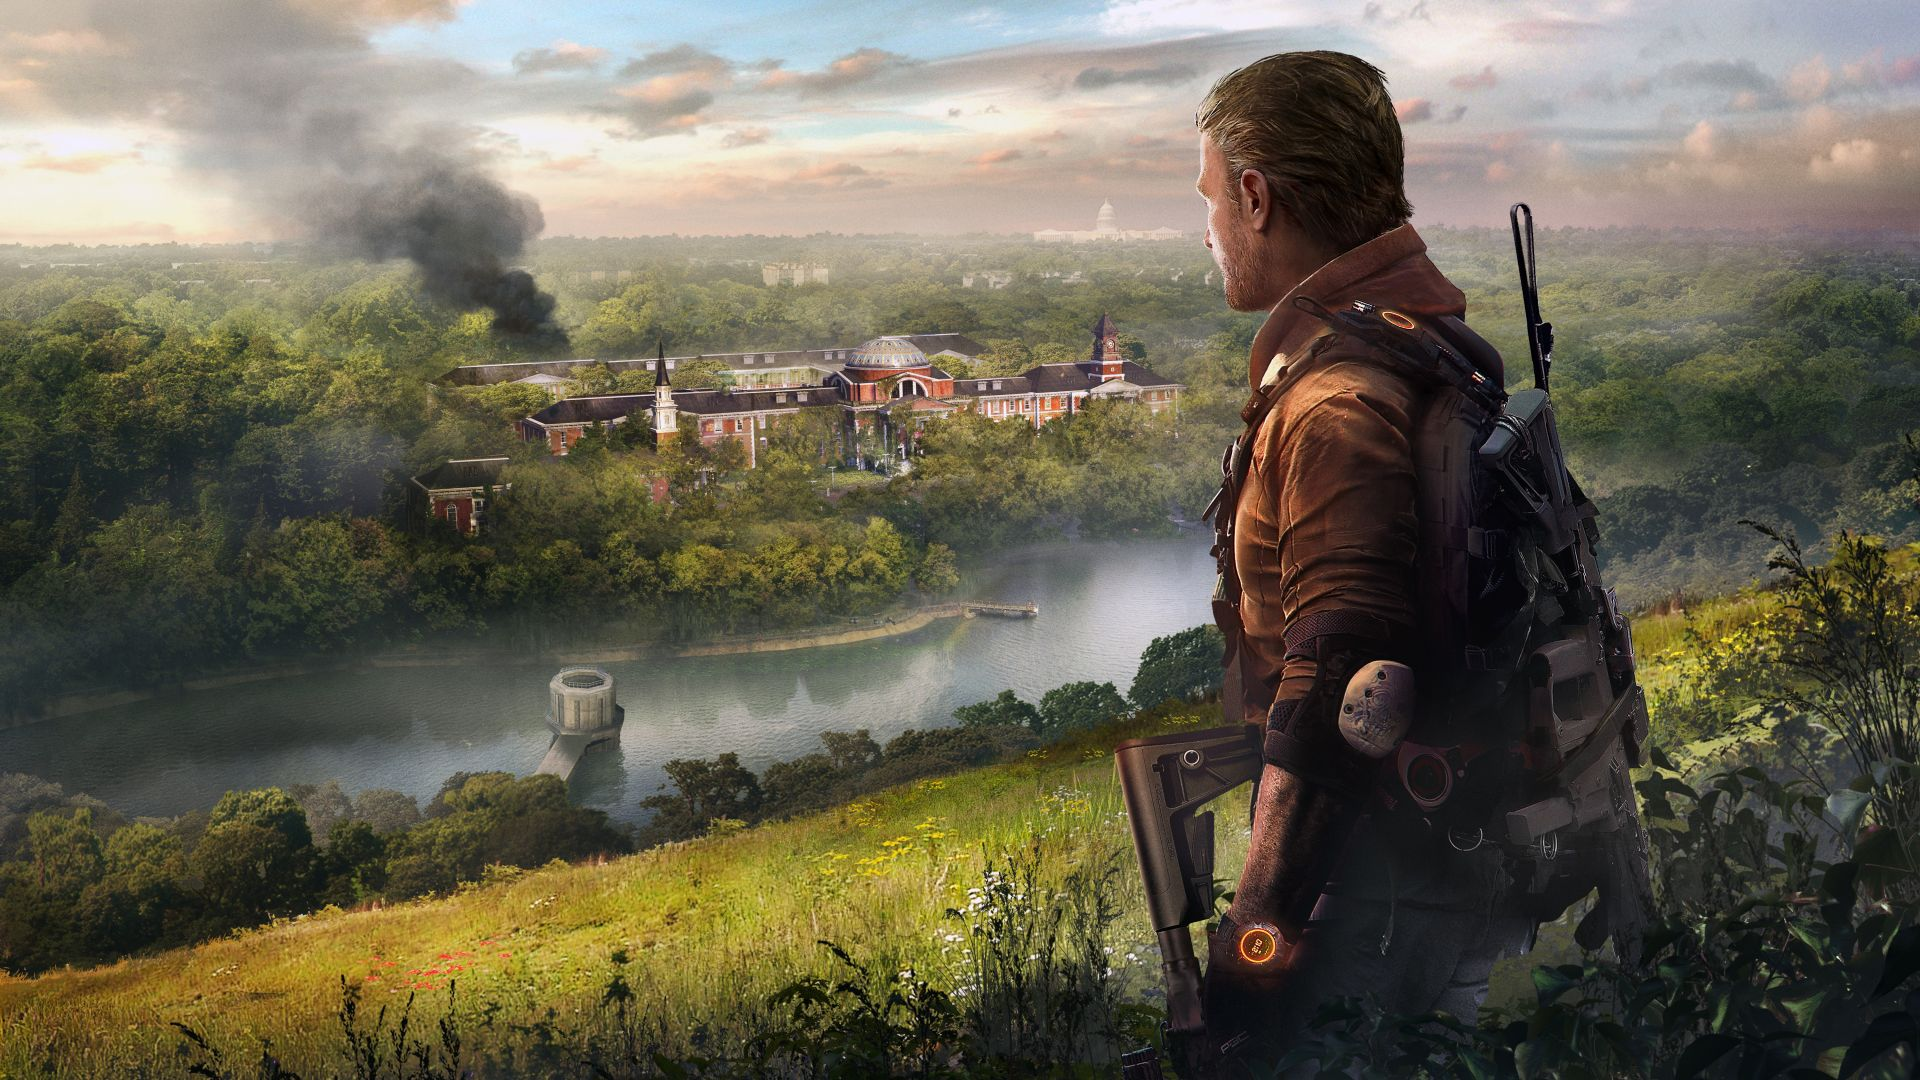 Tom Clancy's The Division 2 Episodes, E3 2019, poster, 5K (horizontal)